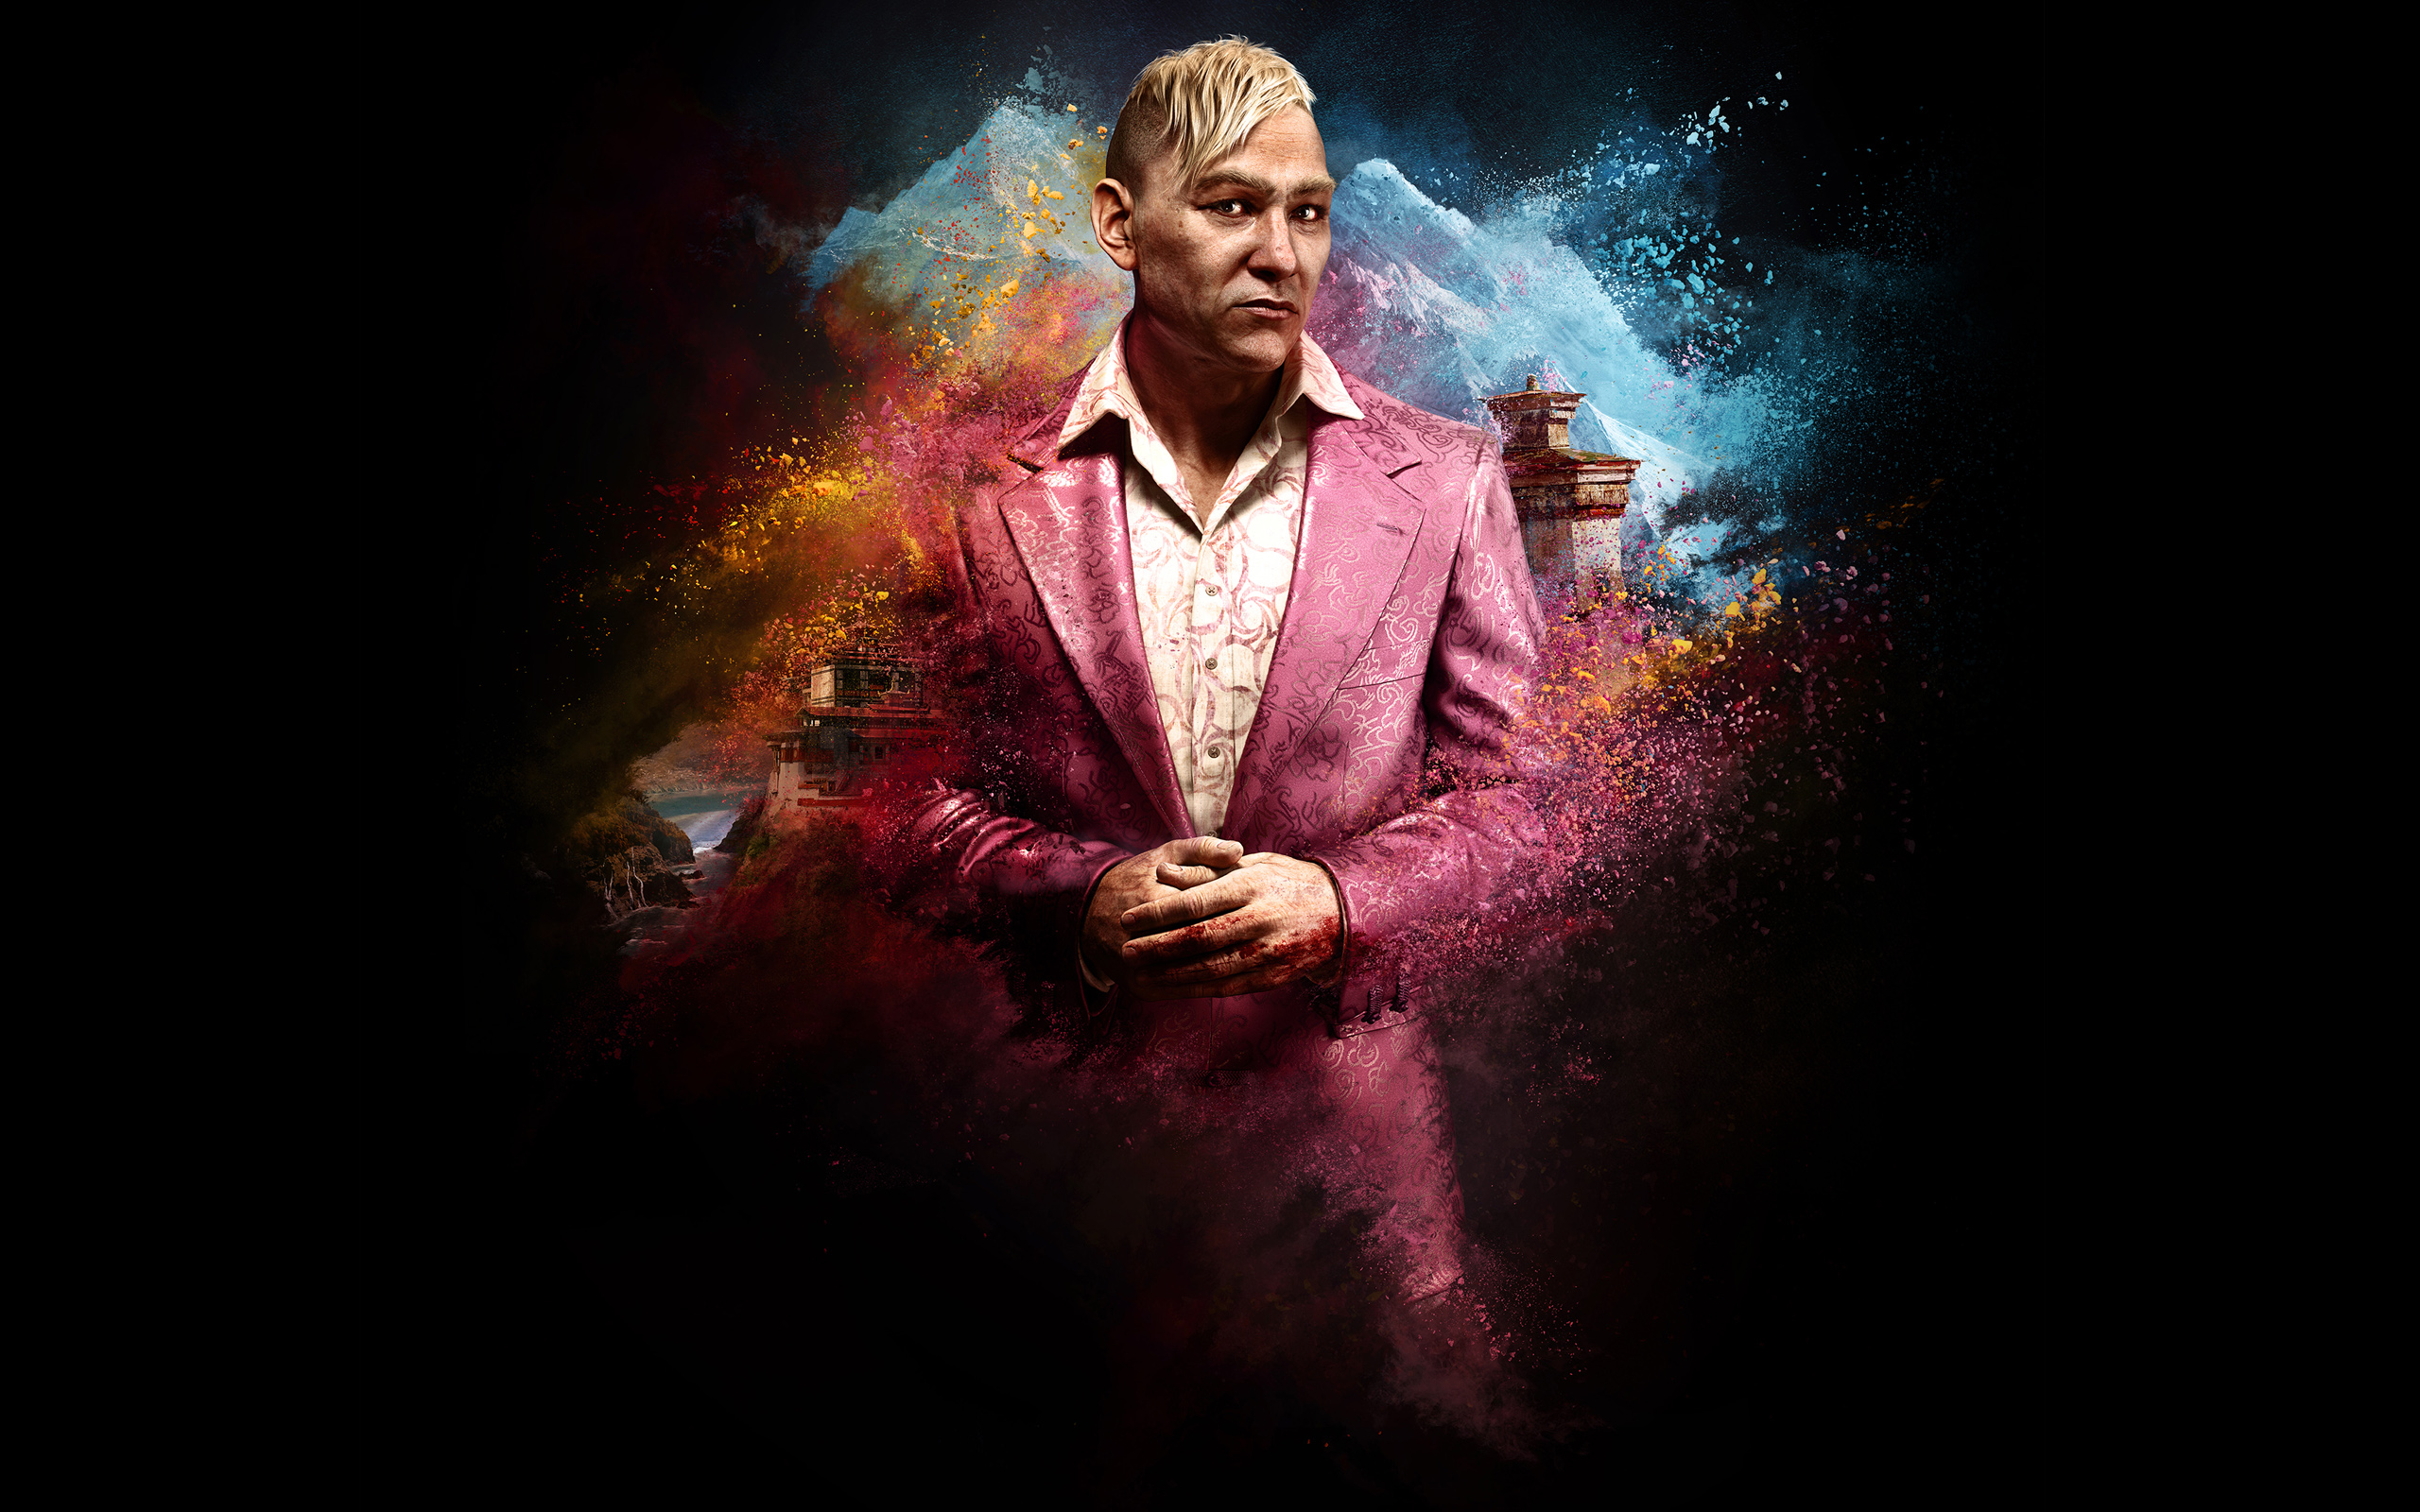 King Pagan Min in Far Cry 4 Wallpapers HD Wallpapers 2560x1600